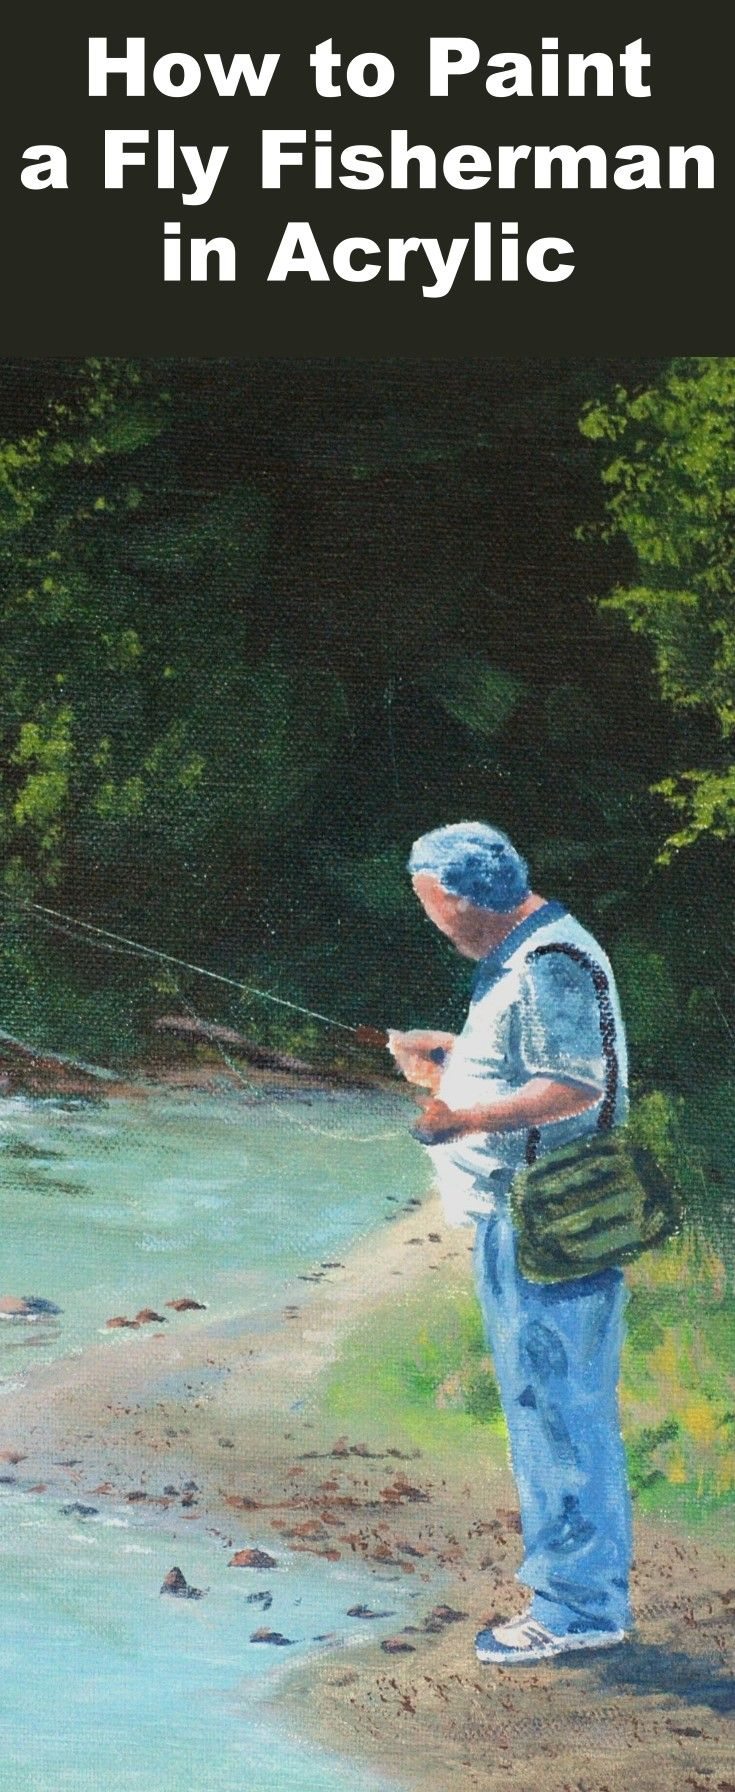 Learn To Paint A Figure Fly Fishing With This Acrylic Painting Tutorial Online Art Lessons Fly Fisherman Learn Acrylic Painting